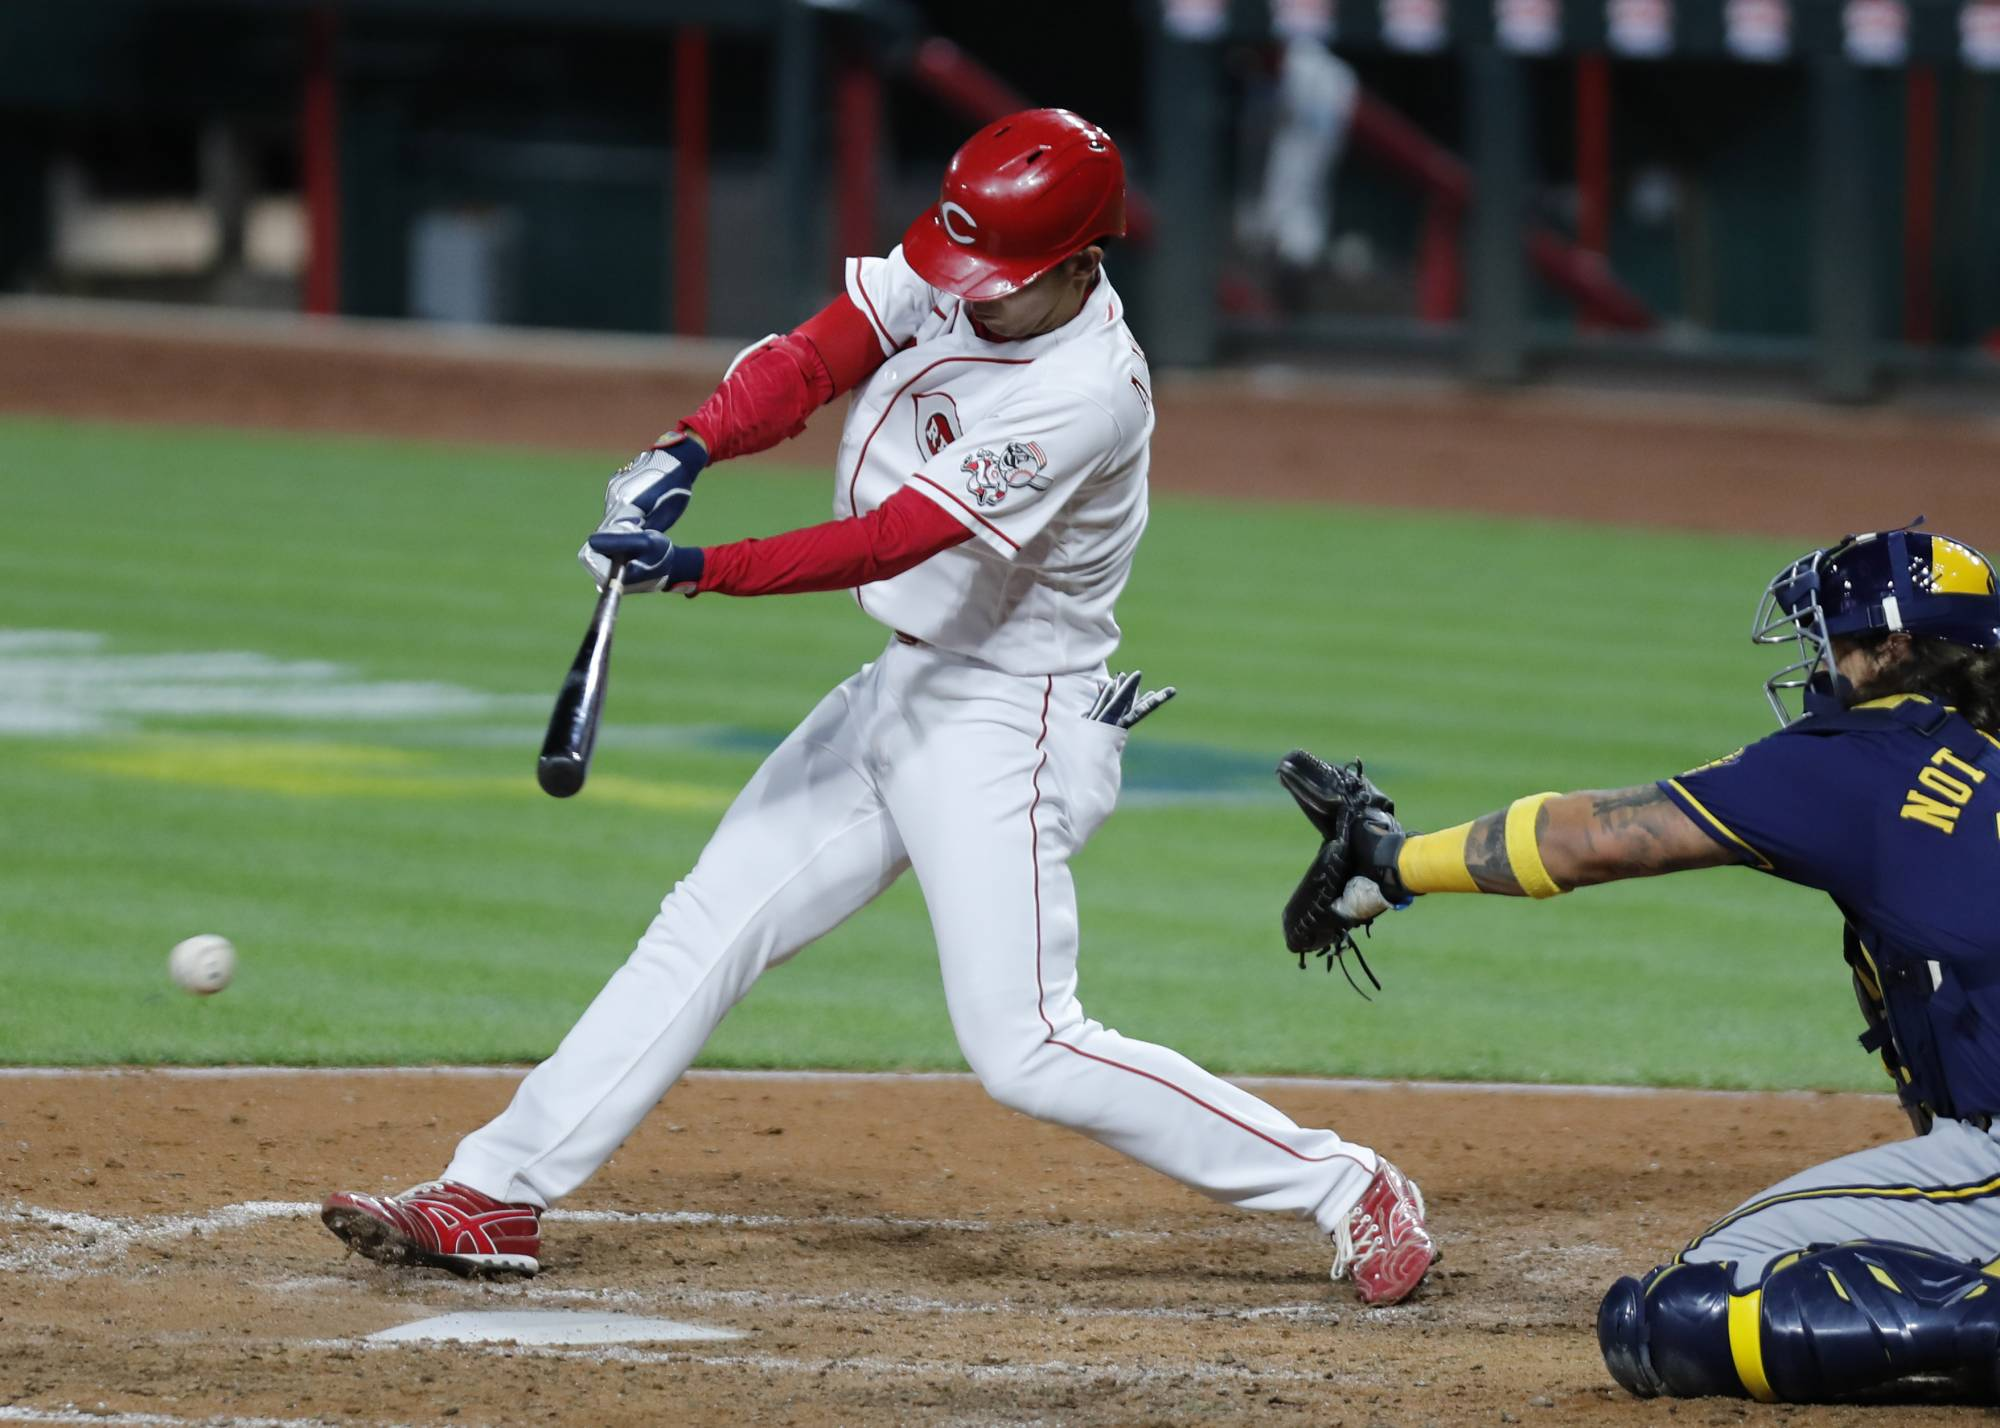 Reds left fielder Shogo Akiyama hits a single against the Brewers on Sept. 21 in Cincinnati. | USA TODAY / VIA REUTERS